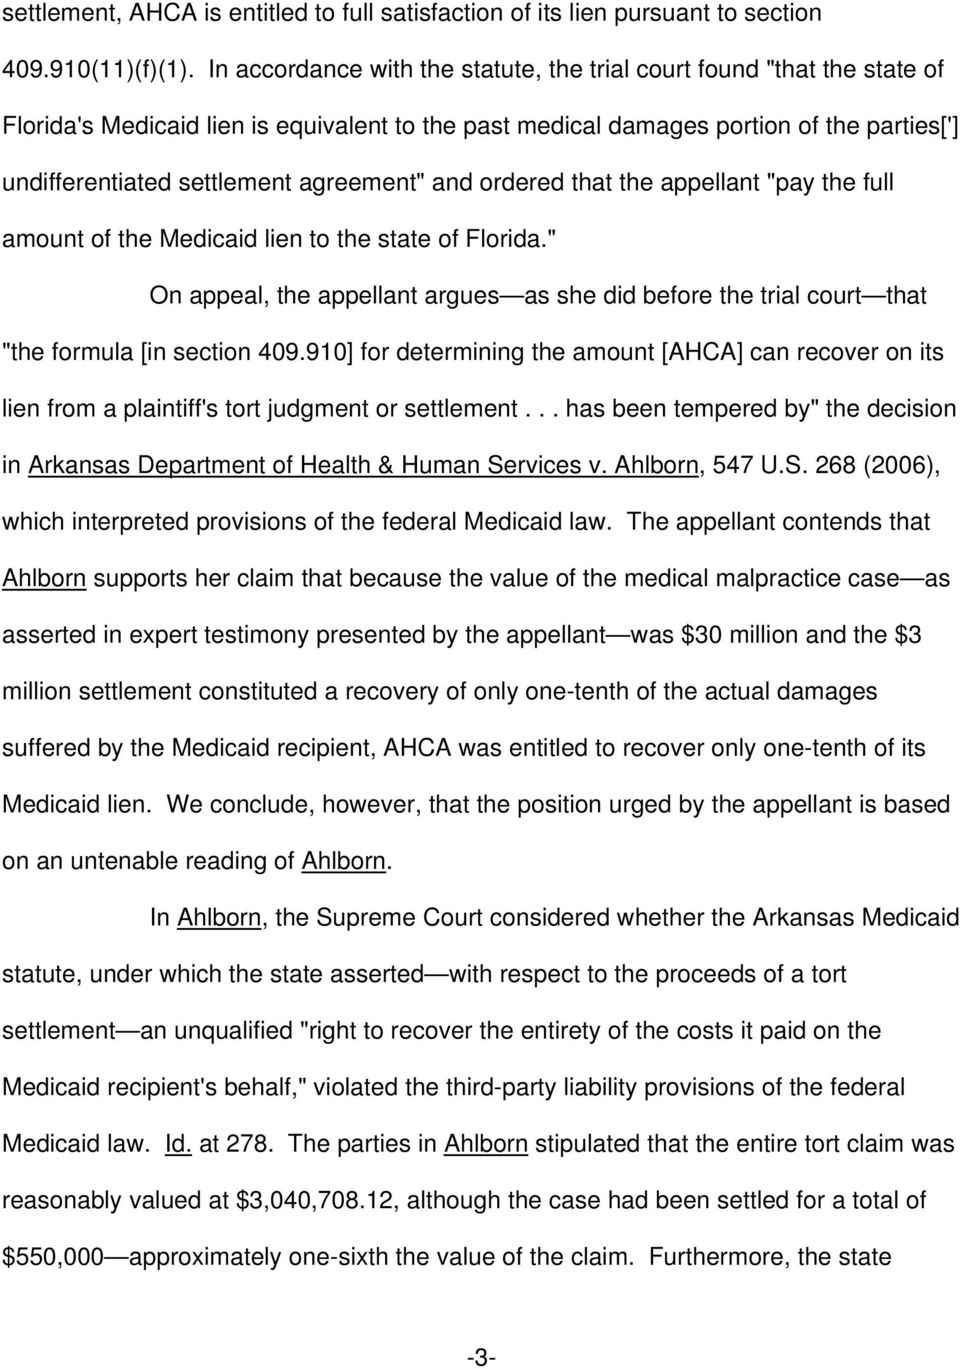 "agreement"" and ordered that the appellant ""pay the full amount of the Medicaid lien to the state of Florida."